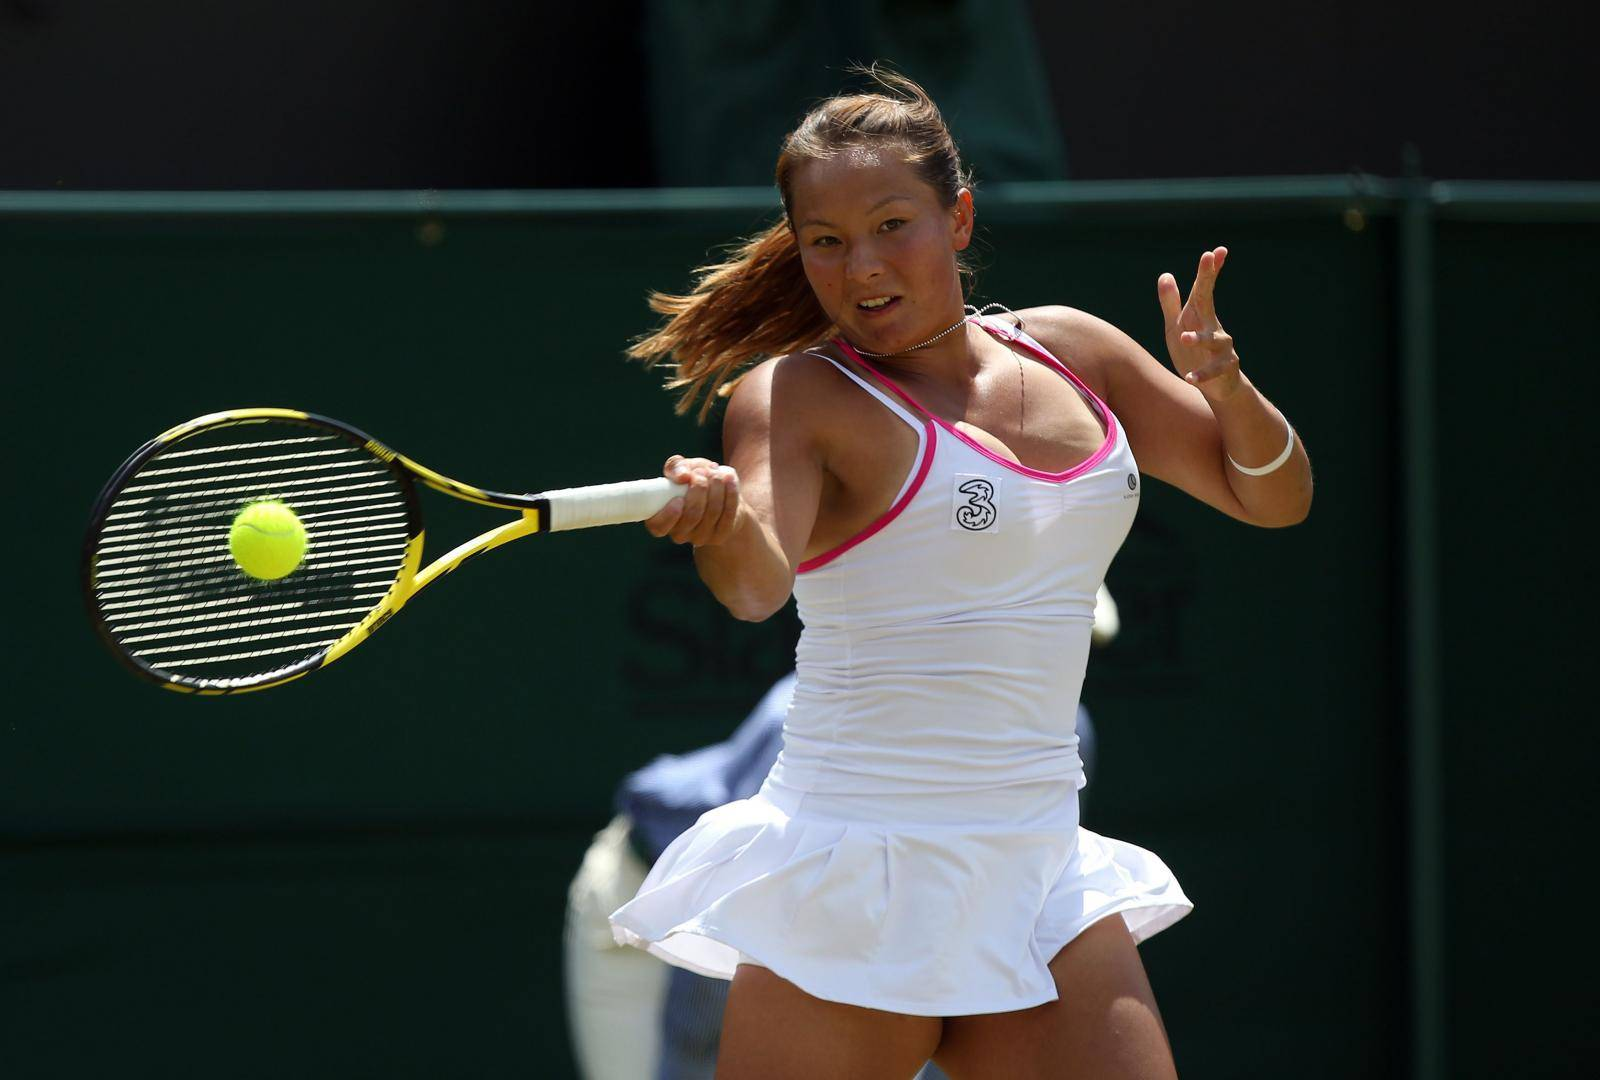 Tennis - 2014 Wimbledon Championships - Day Three - The All England Lawn Tennis and Croquet Club